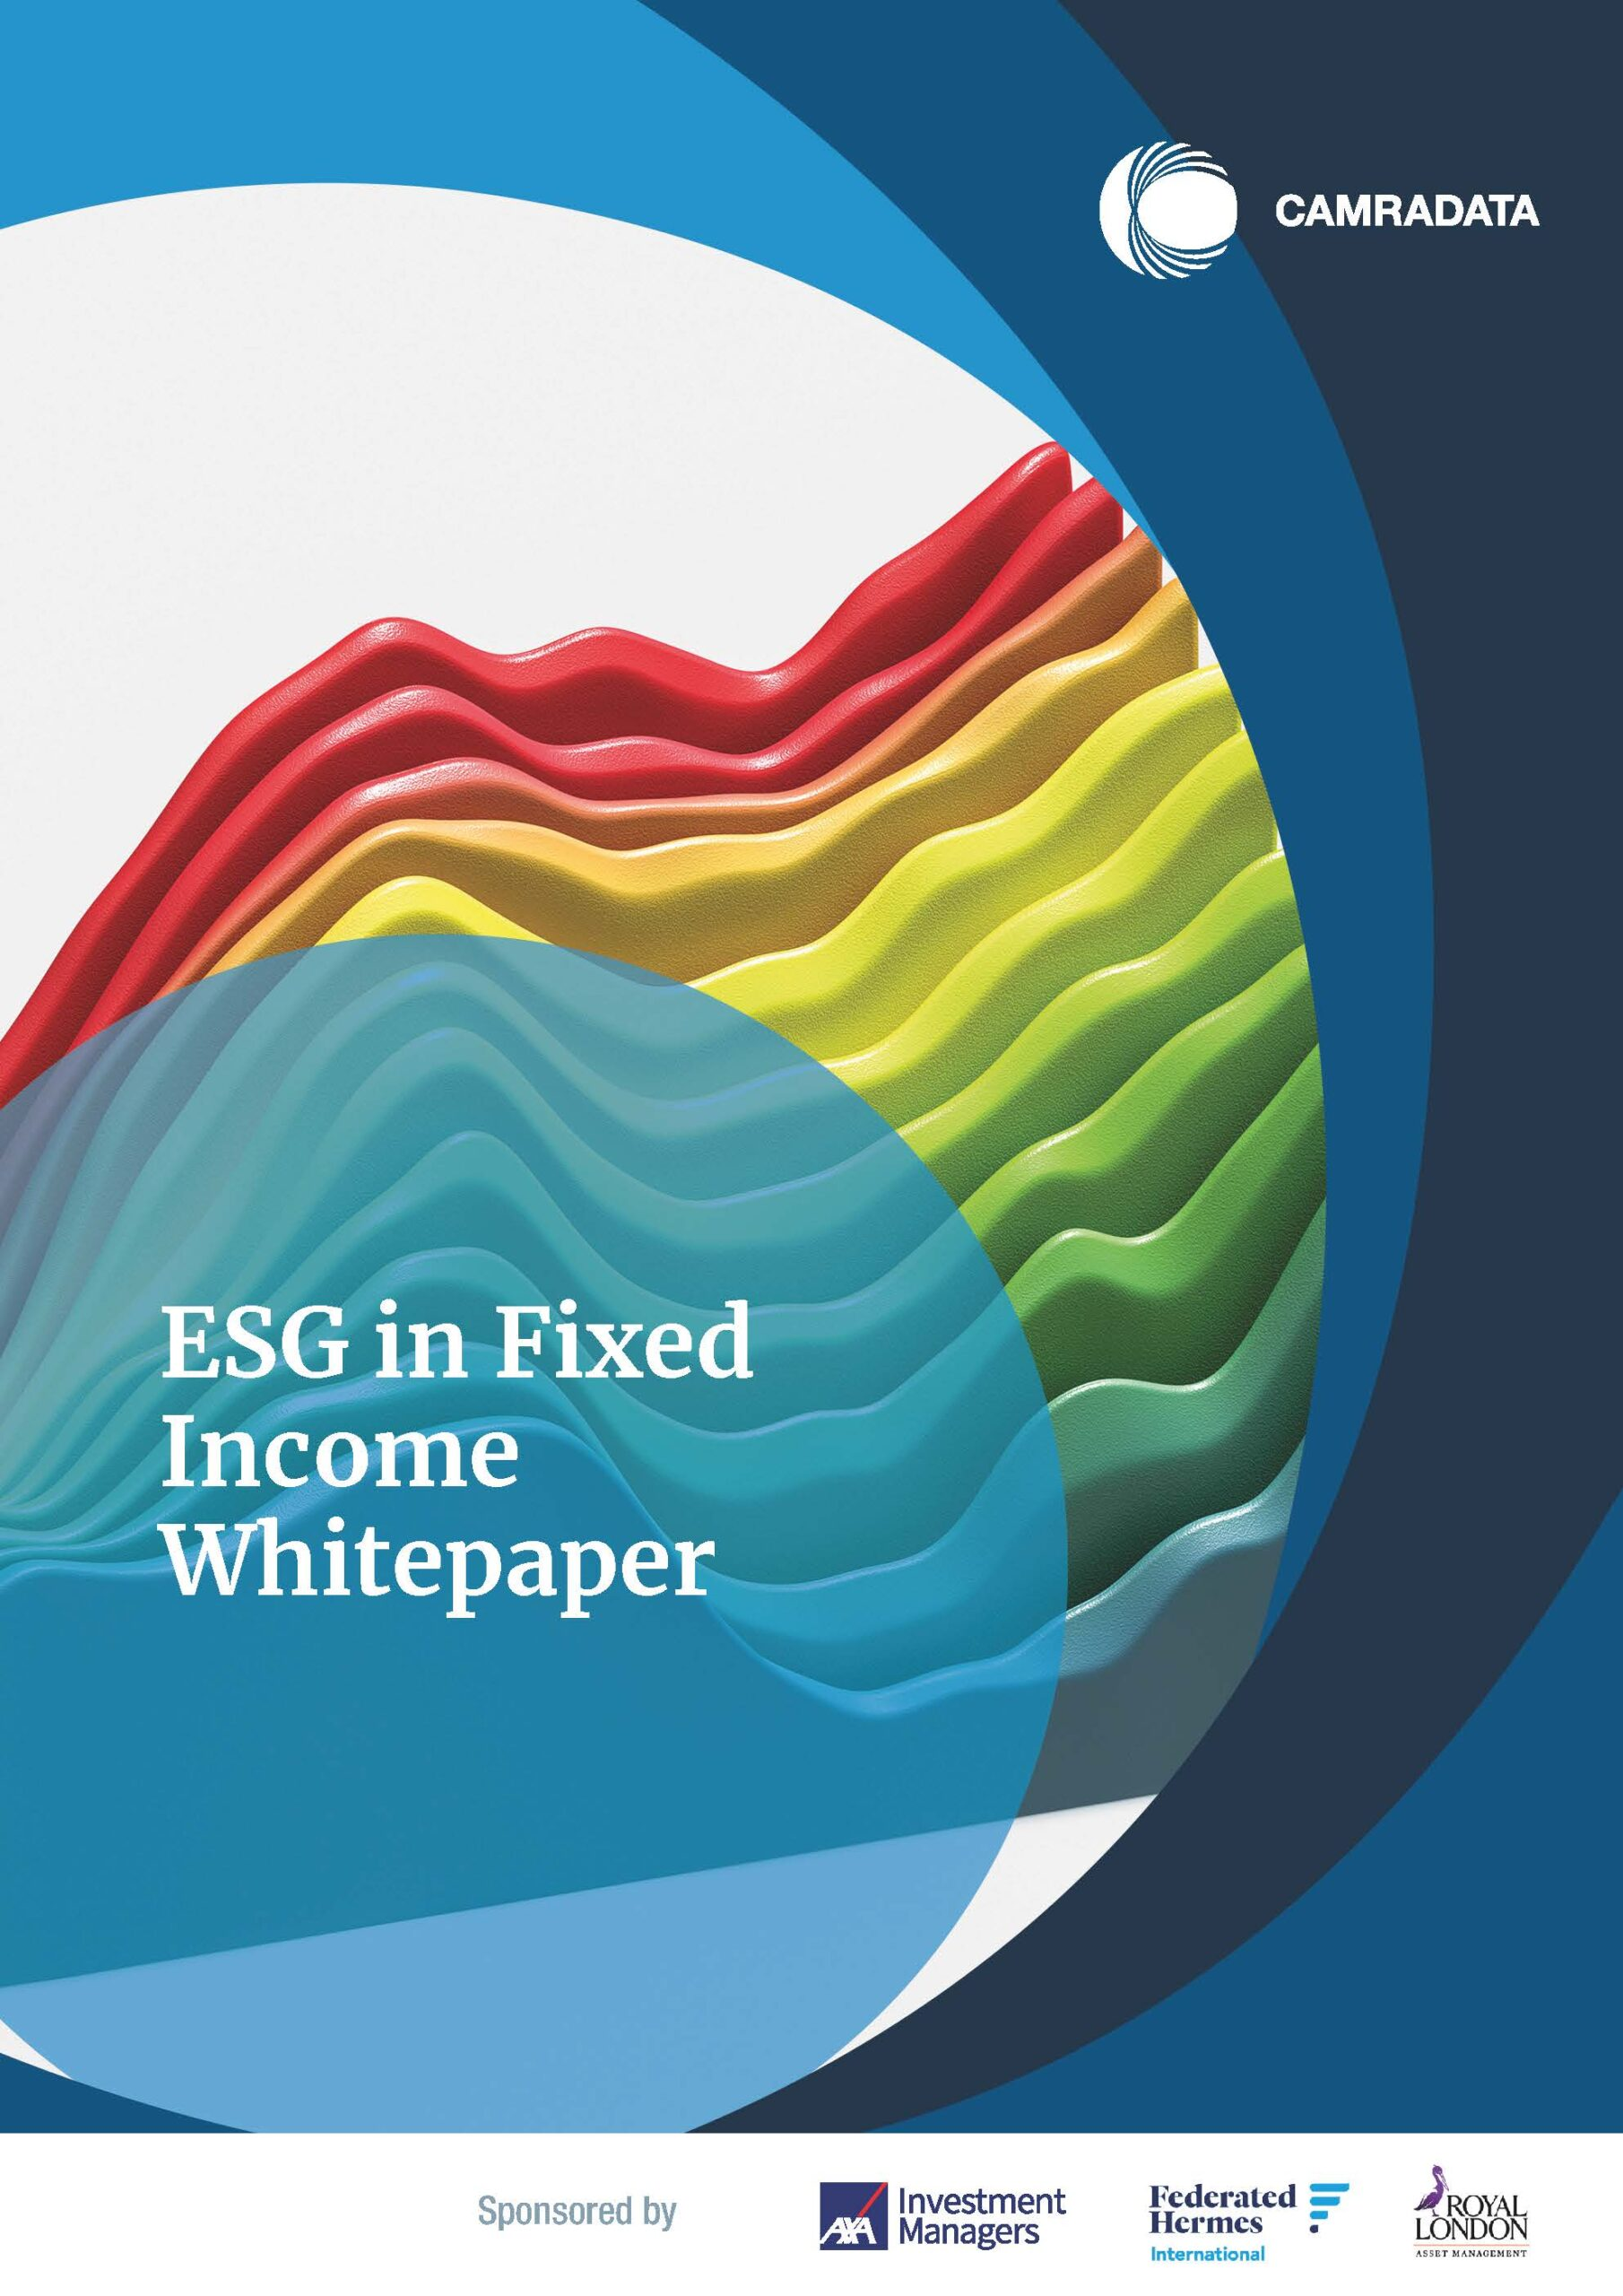 ESG in Fixed Income